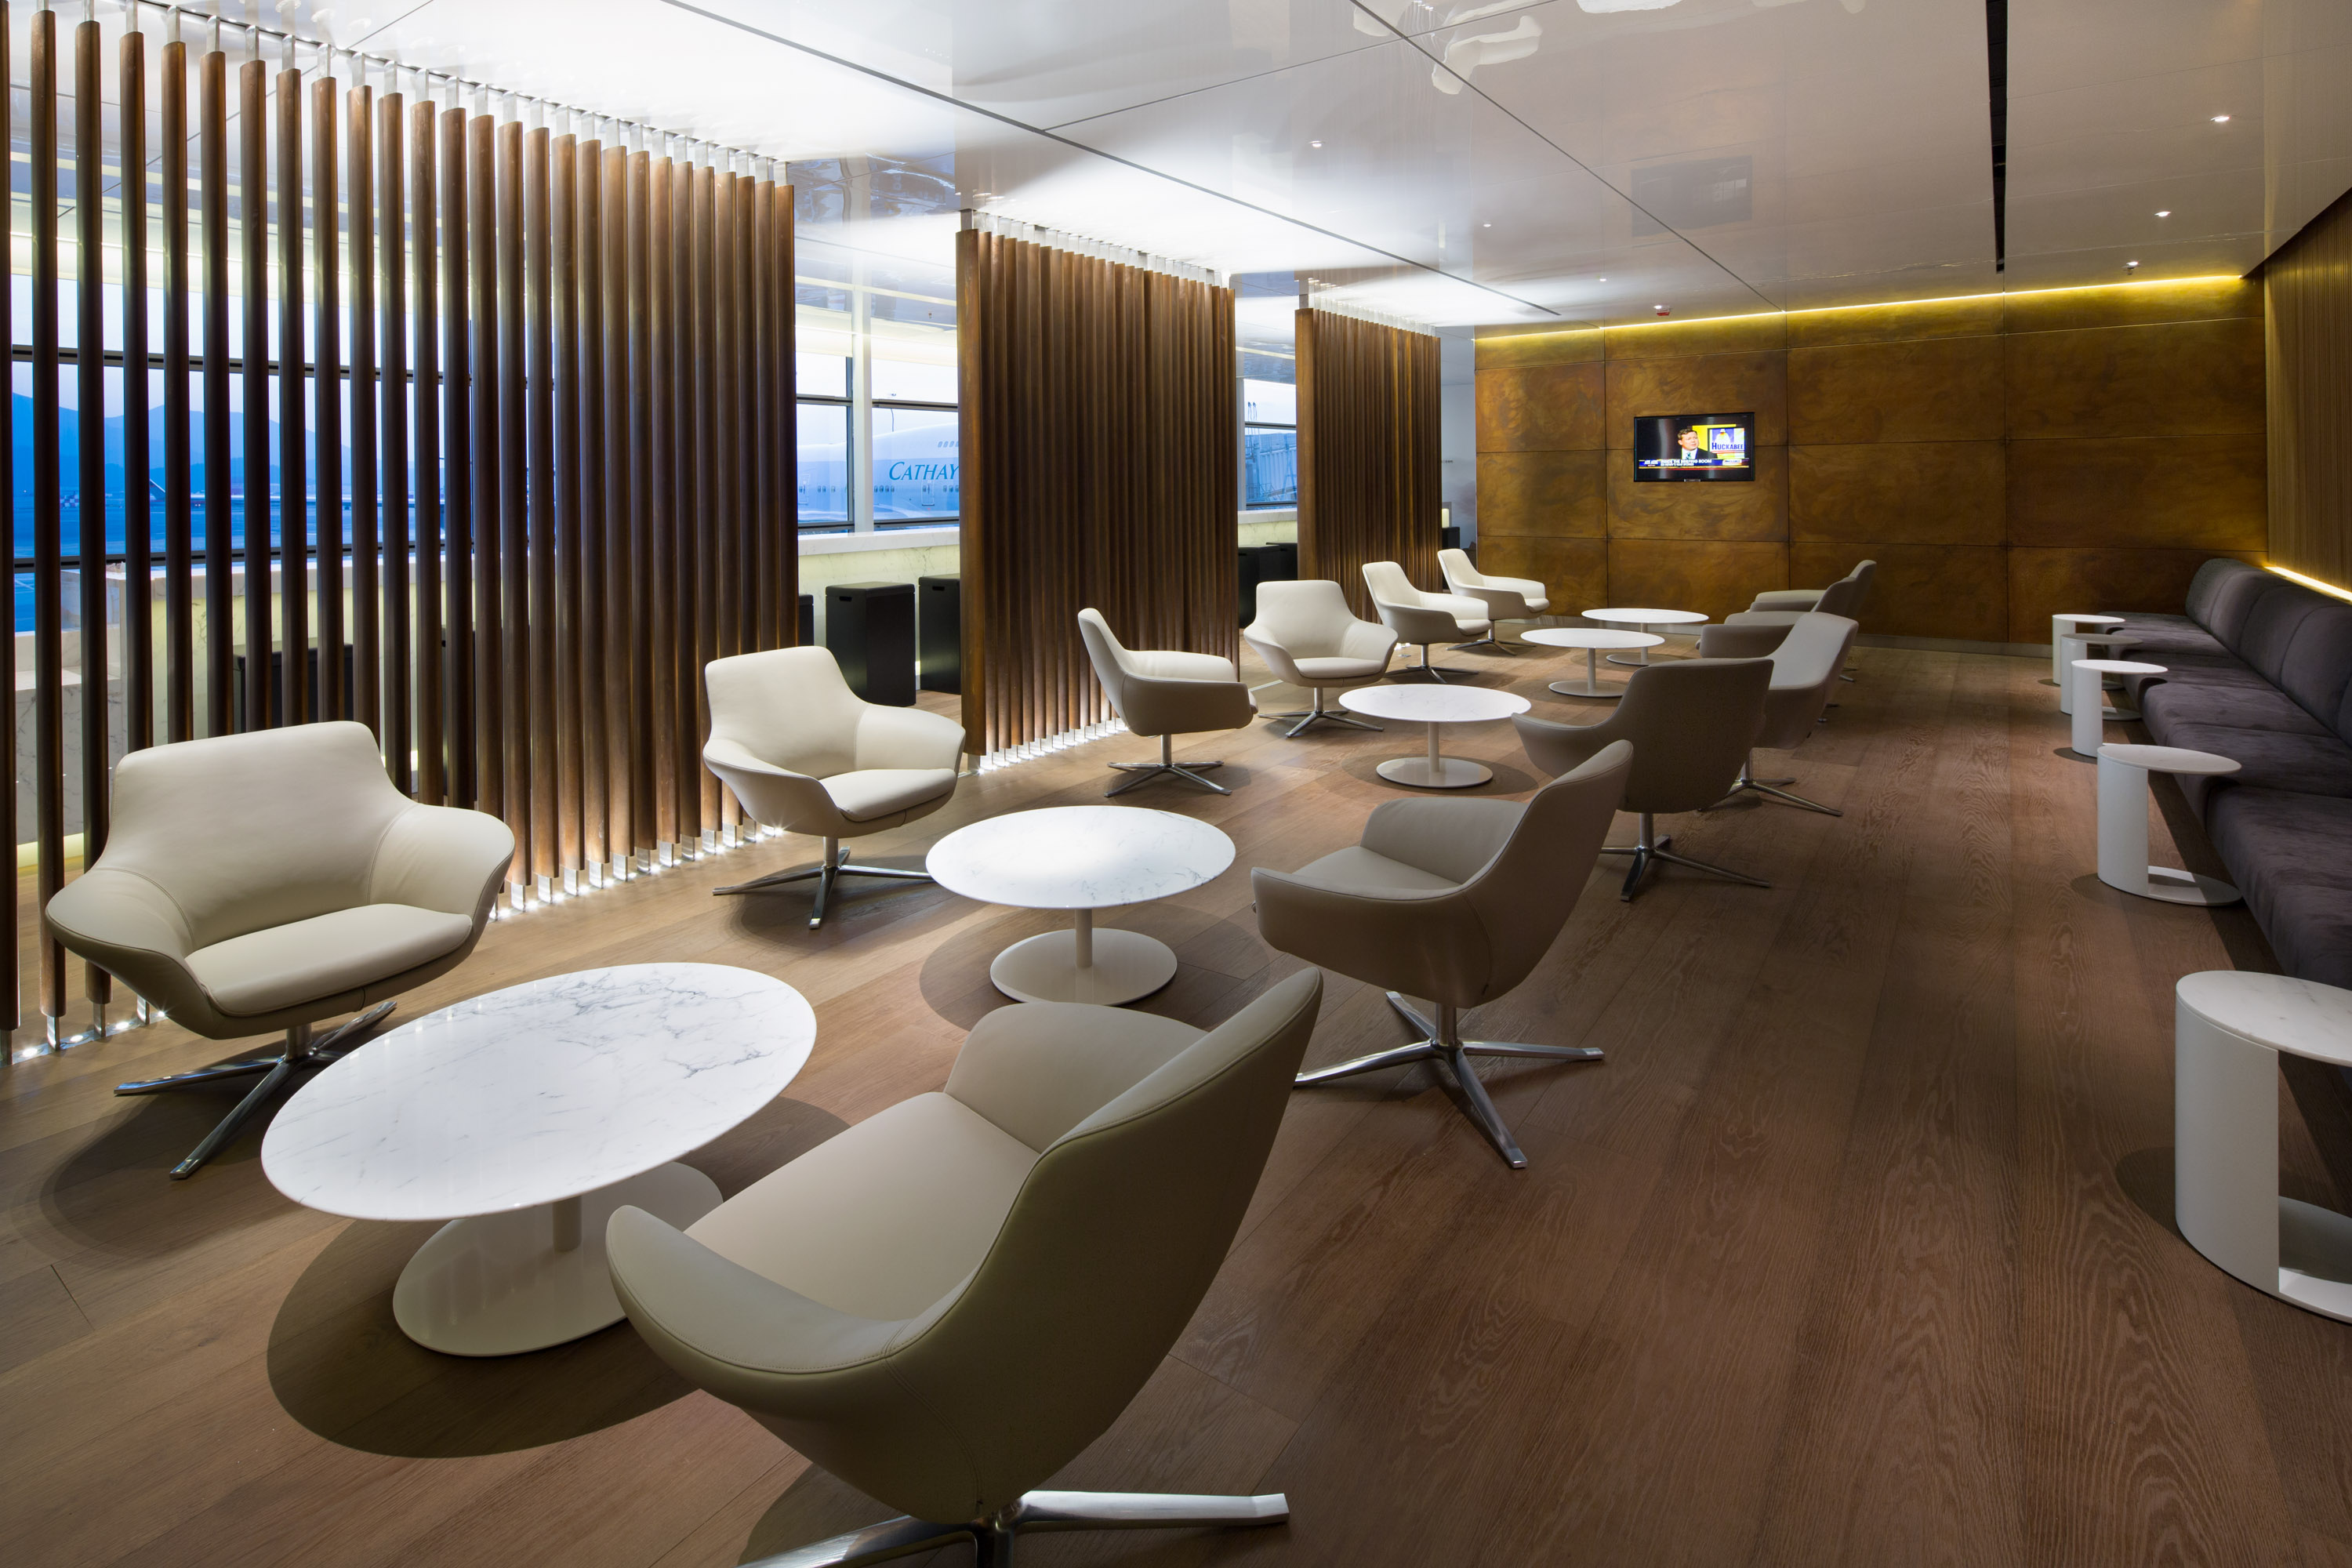 Thedesignair s top 10 airport lounges 2015 thedesignair for Lounge designs